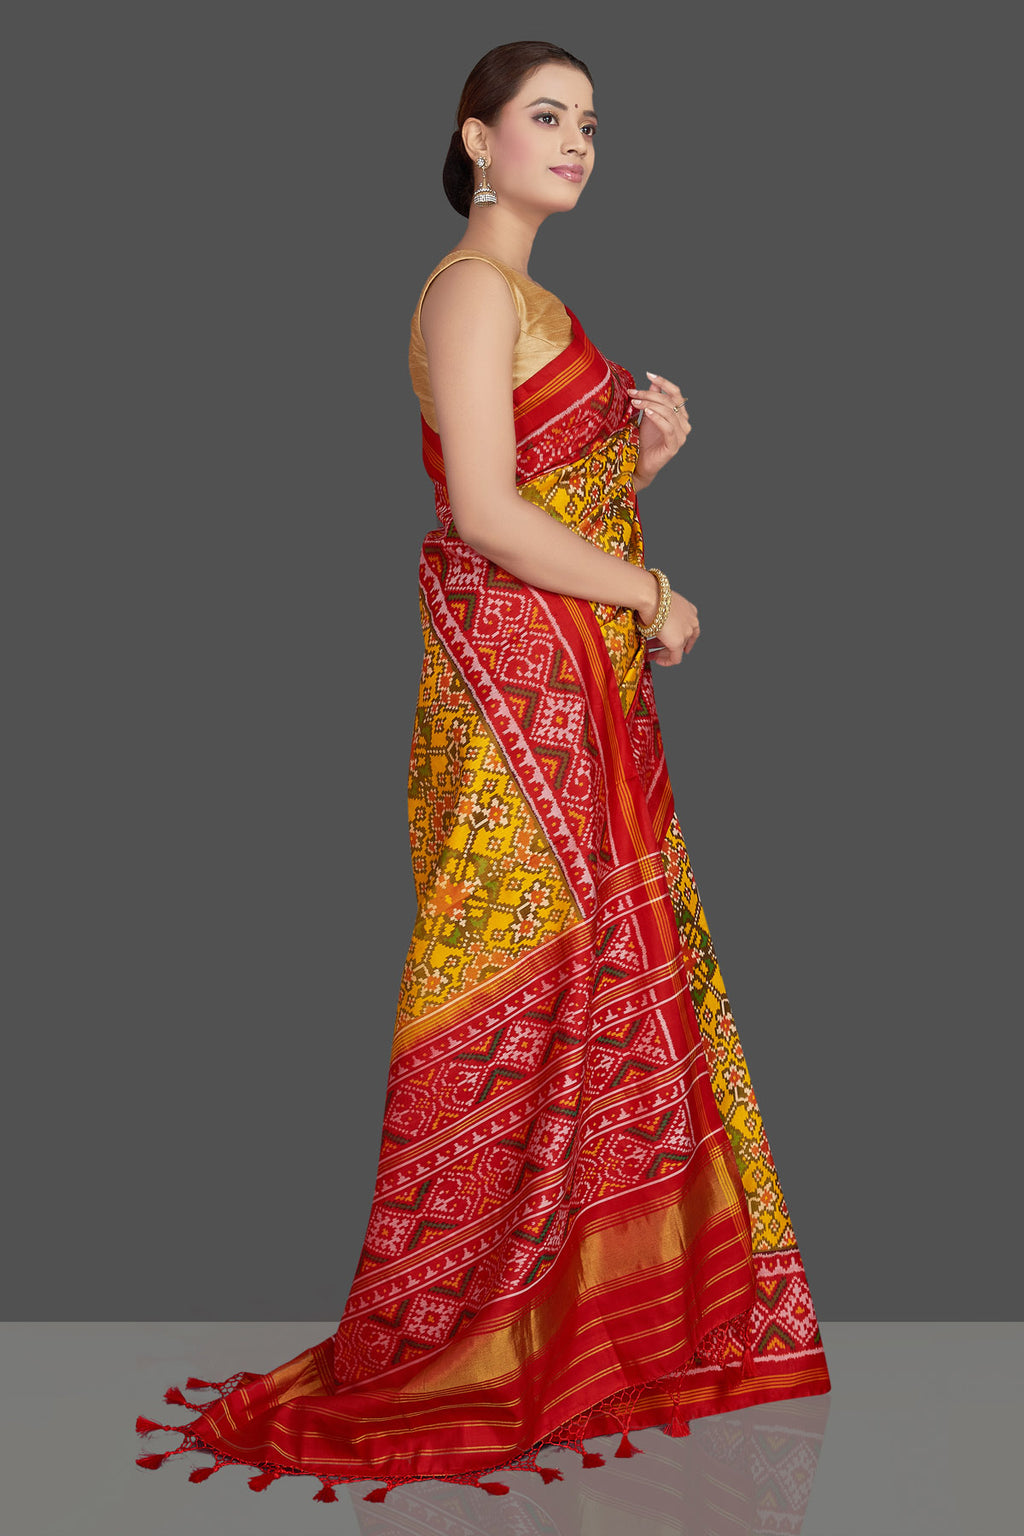 Buy beautiful yellow ikkat Patola silk saree online in USA with red ikkat border. Make a fashion statement on weddings and special occasions in stunning silk sarees, Patola sarees, handwoven silk sarees, designer saris from Pure Elegance Indian clothing store in USA.-side